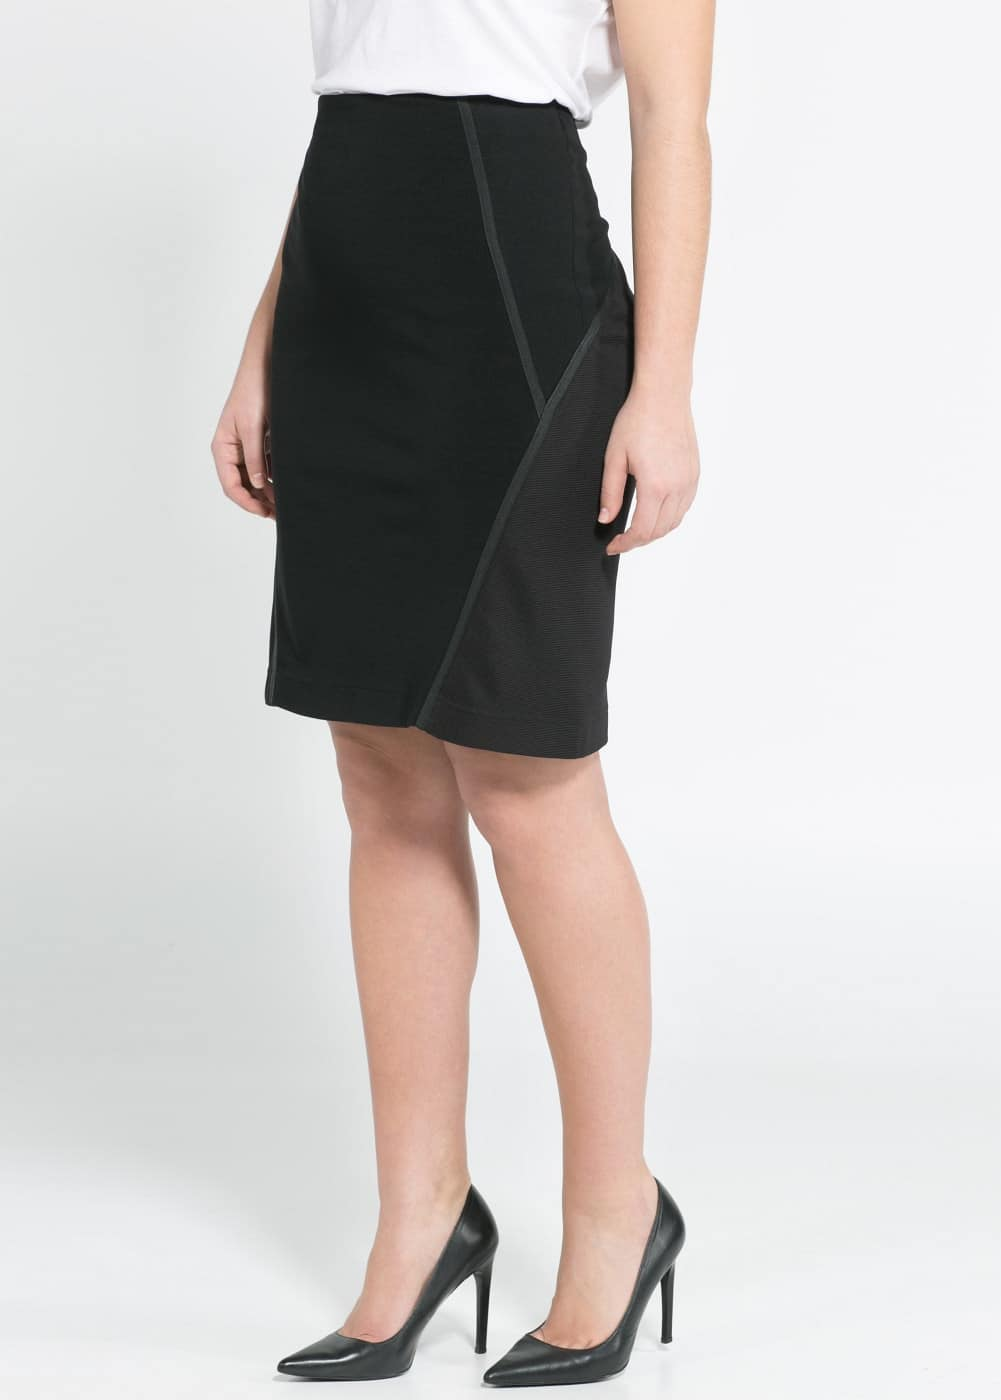 Trim pencil skirt